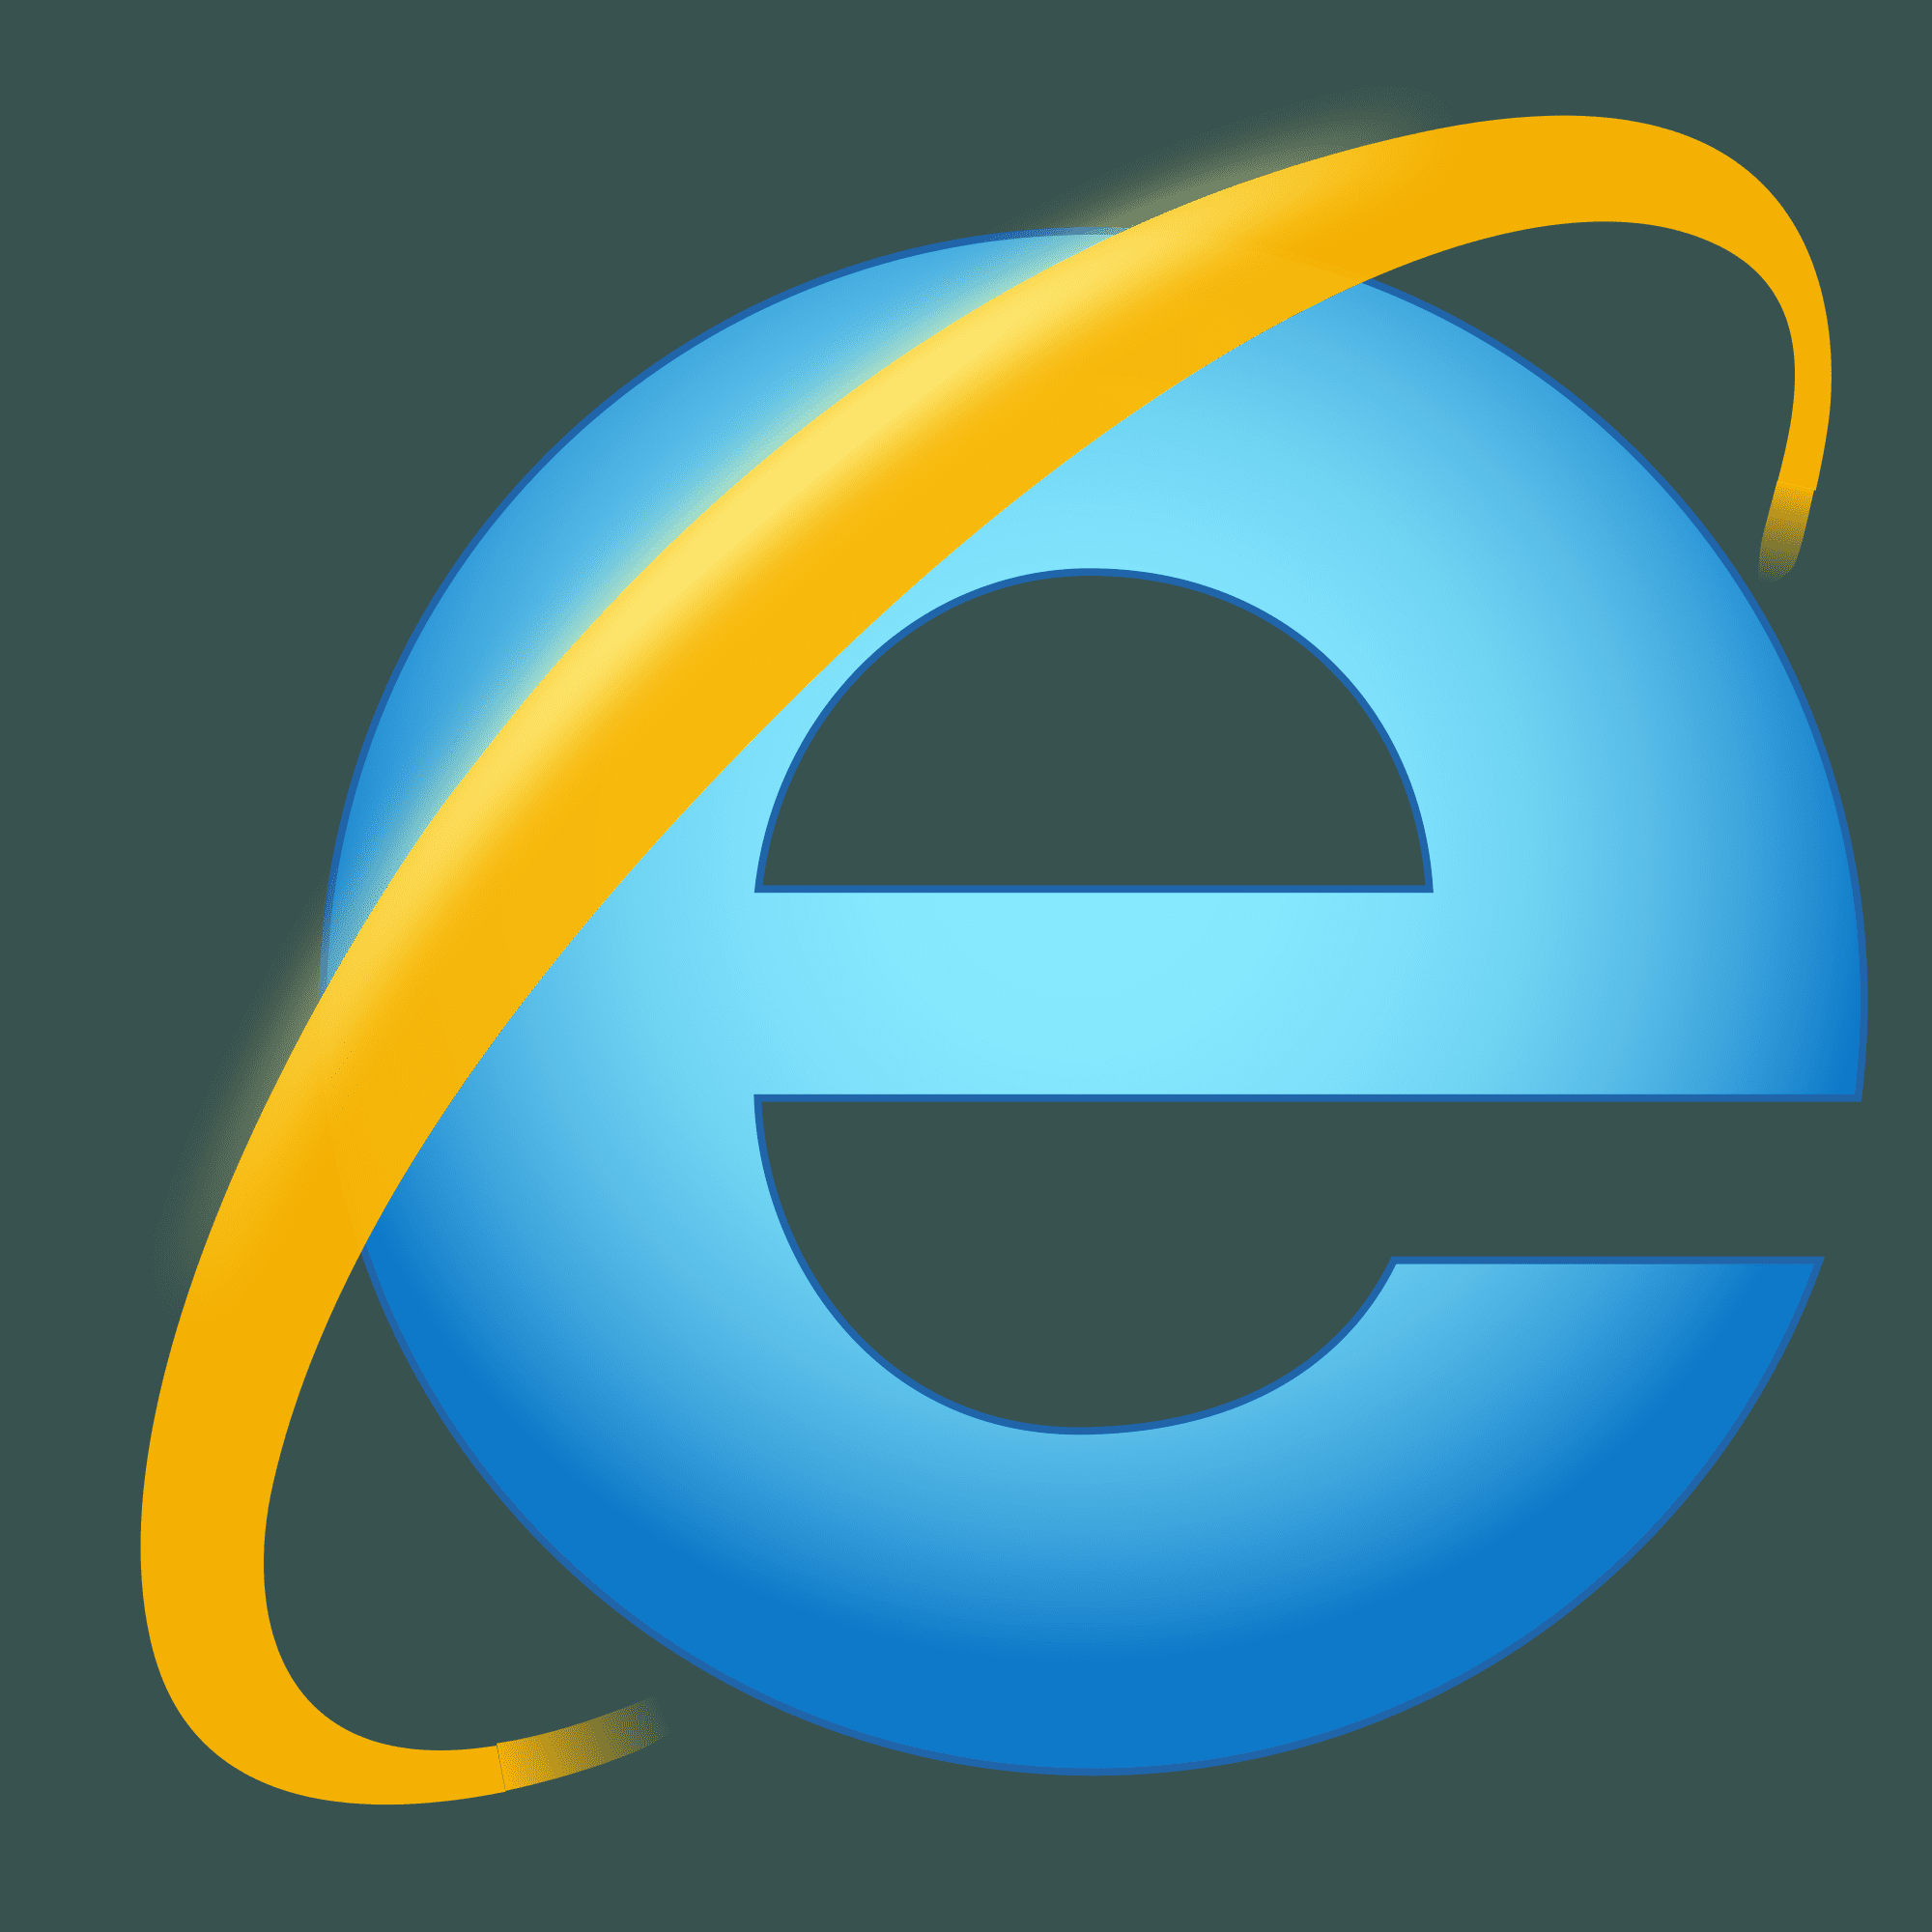 how to change the internet explorer image